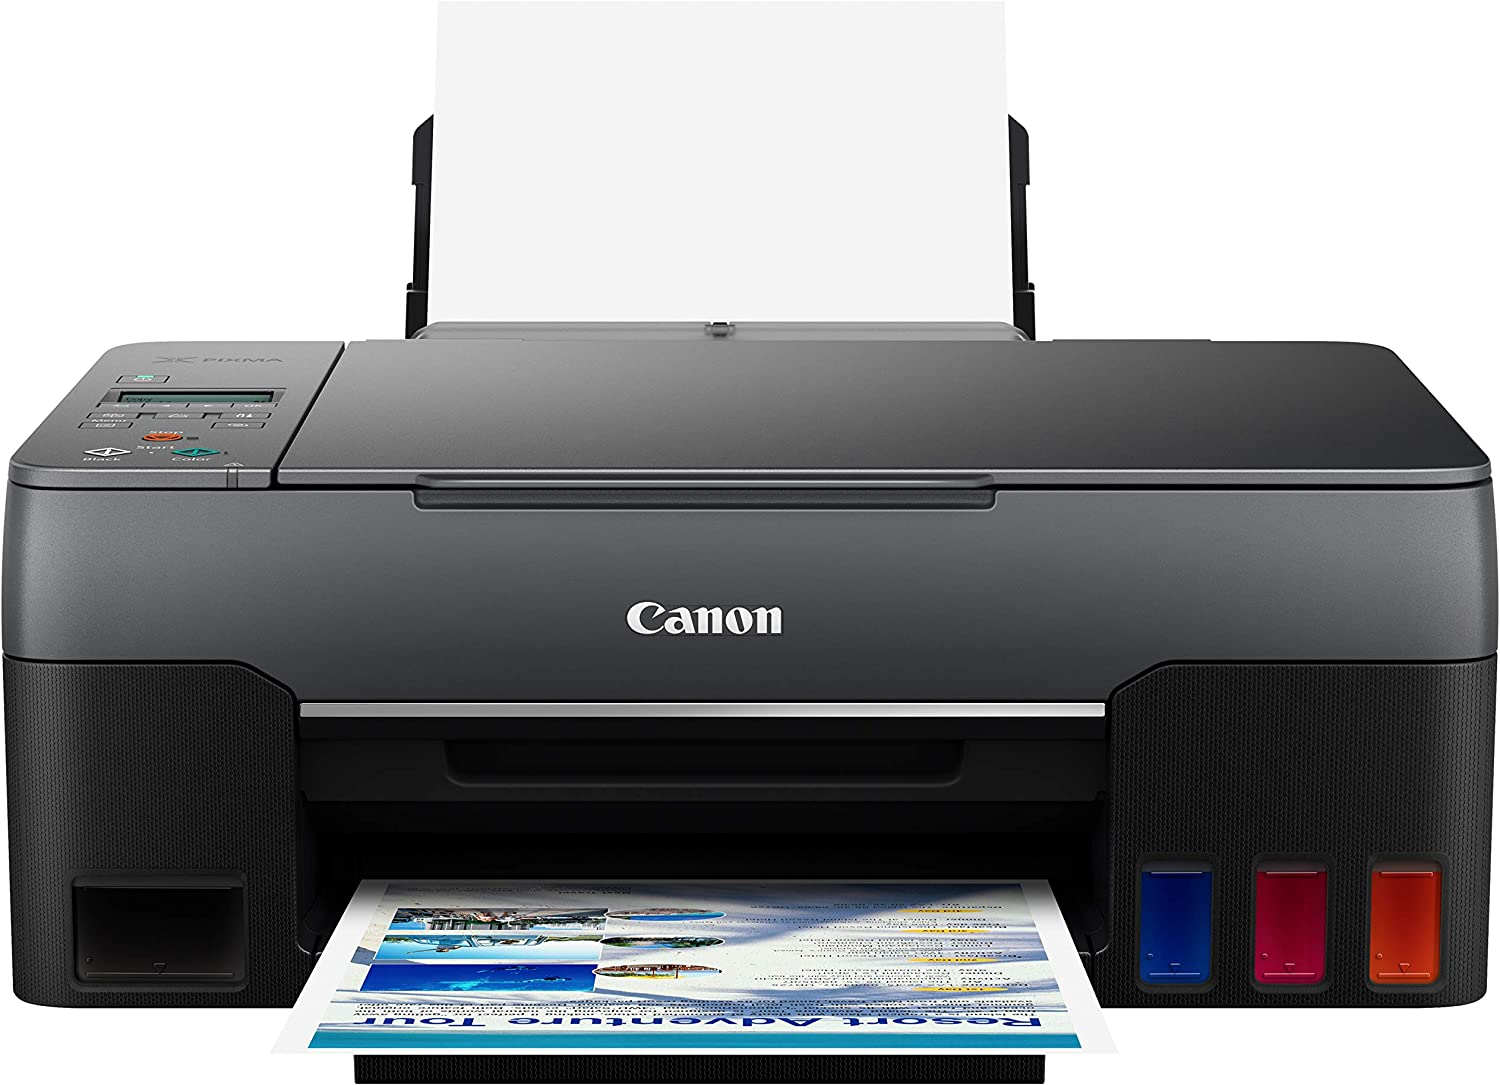 Canon G3260 All-in-One Printer | Wireless Supertank (Megatank) Printer | Copier | Scan, with Mobile Printing, Black, one Size (4468C002)